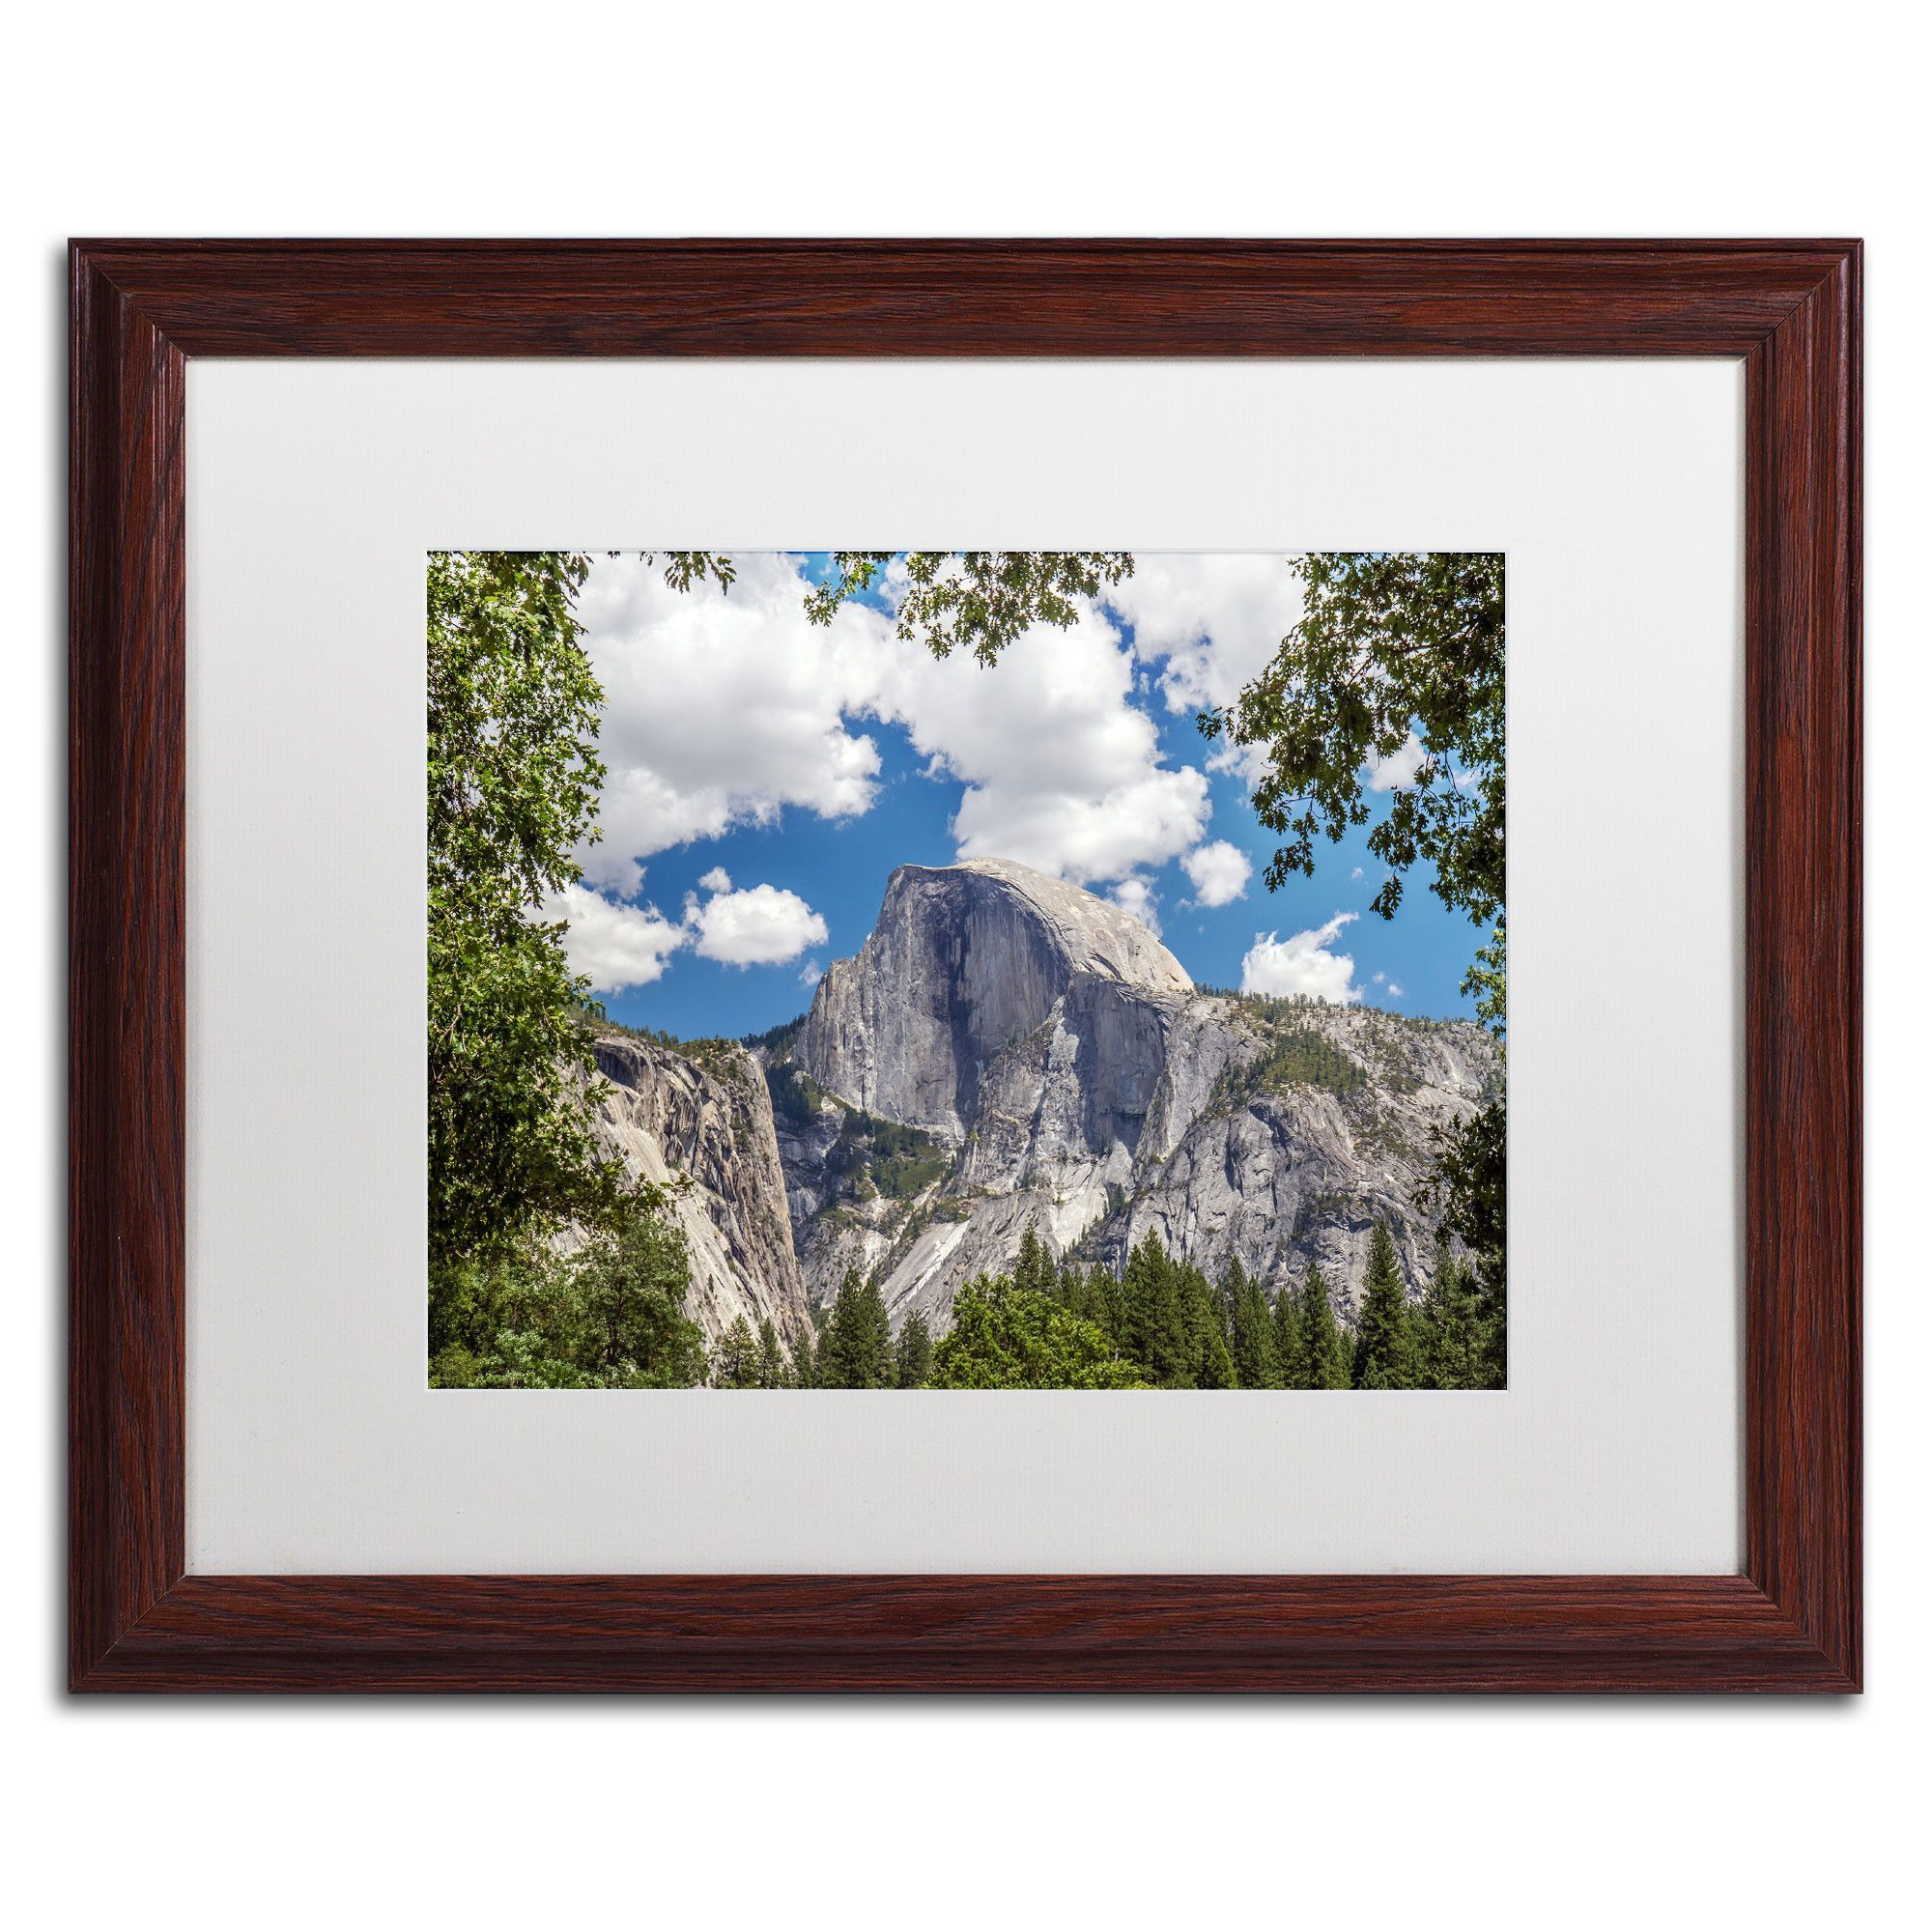 'Yosemite Half Dome' by Pierre Leclerc Framed Photographic Print